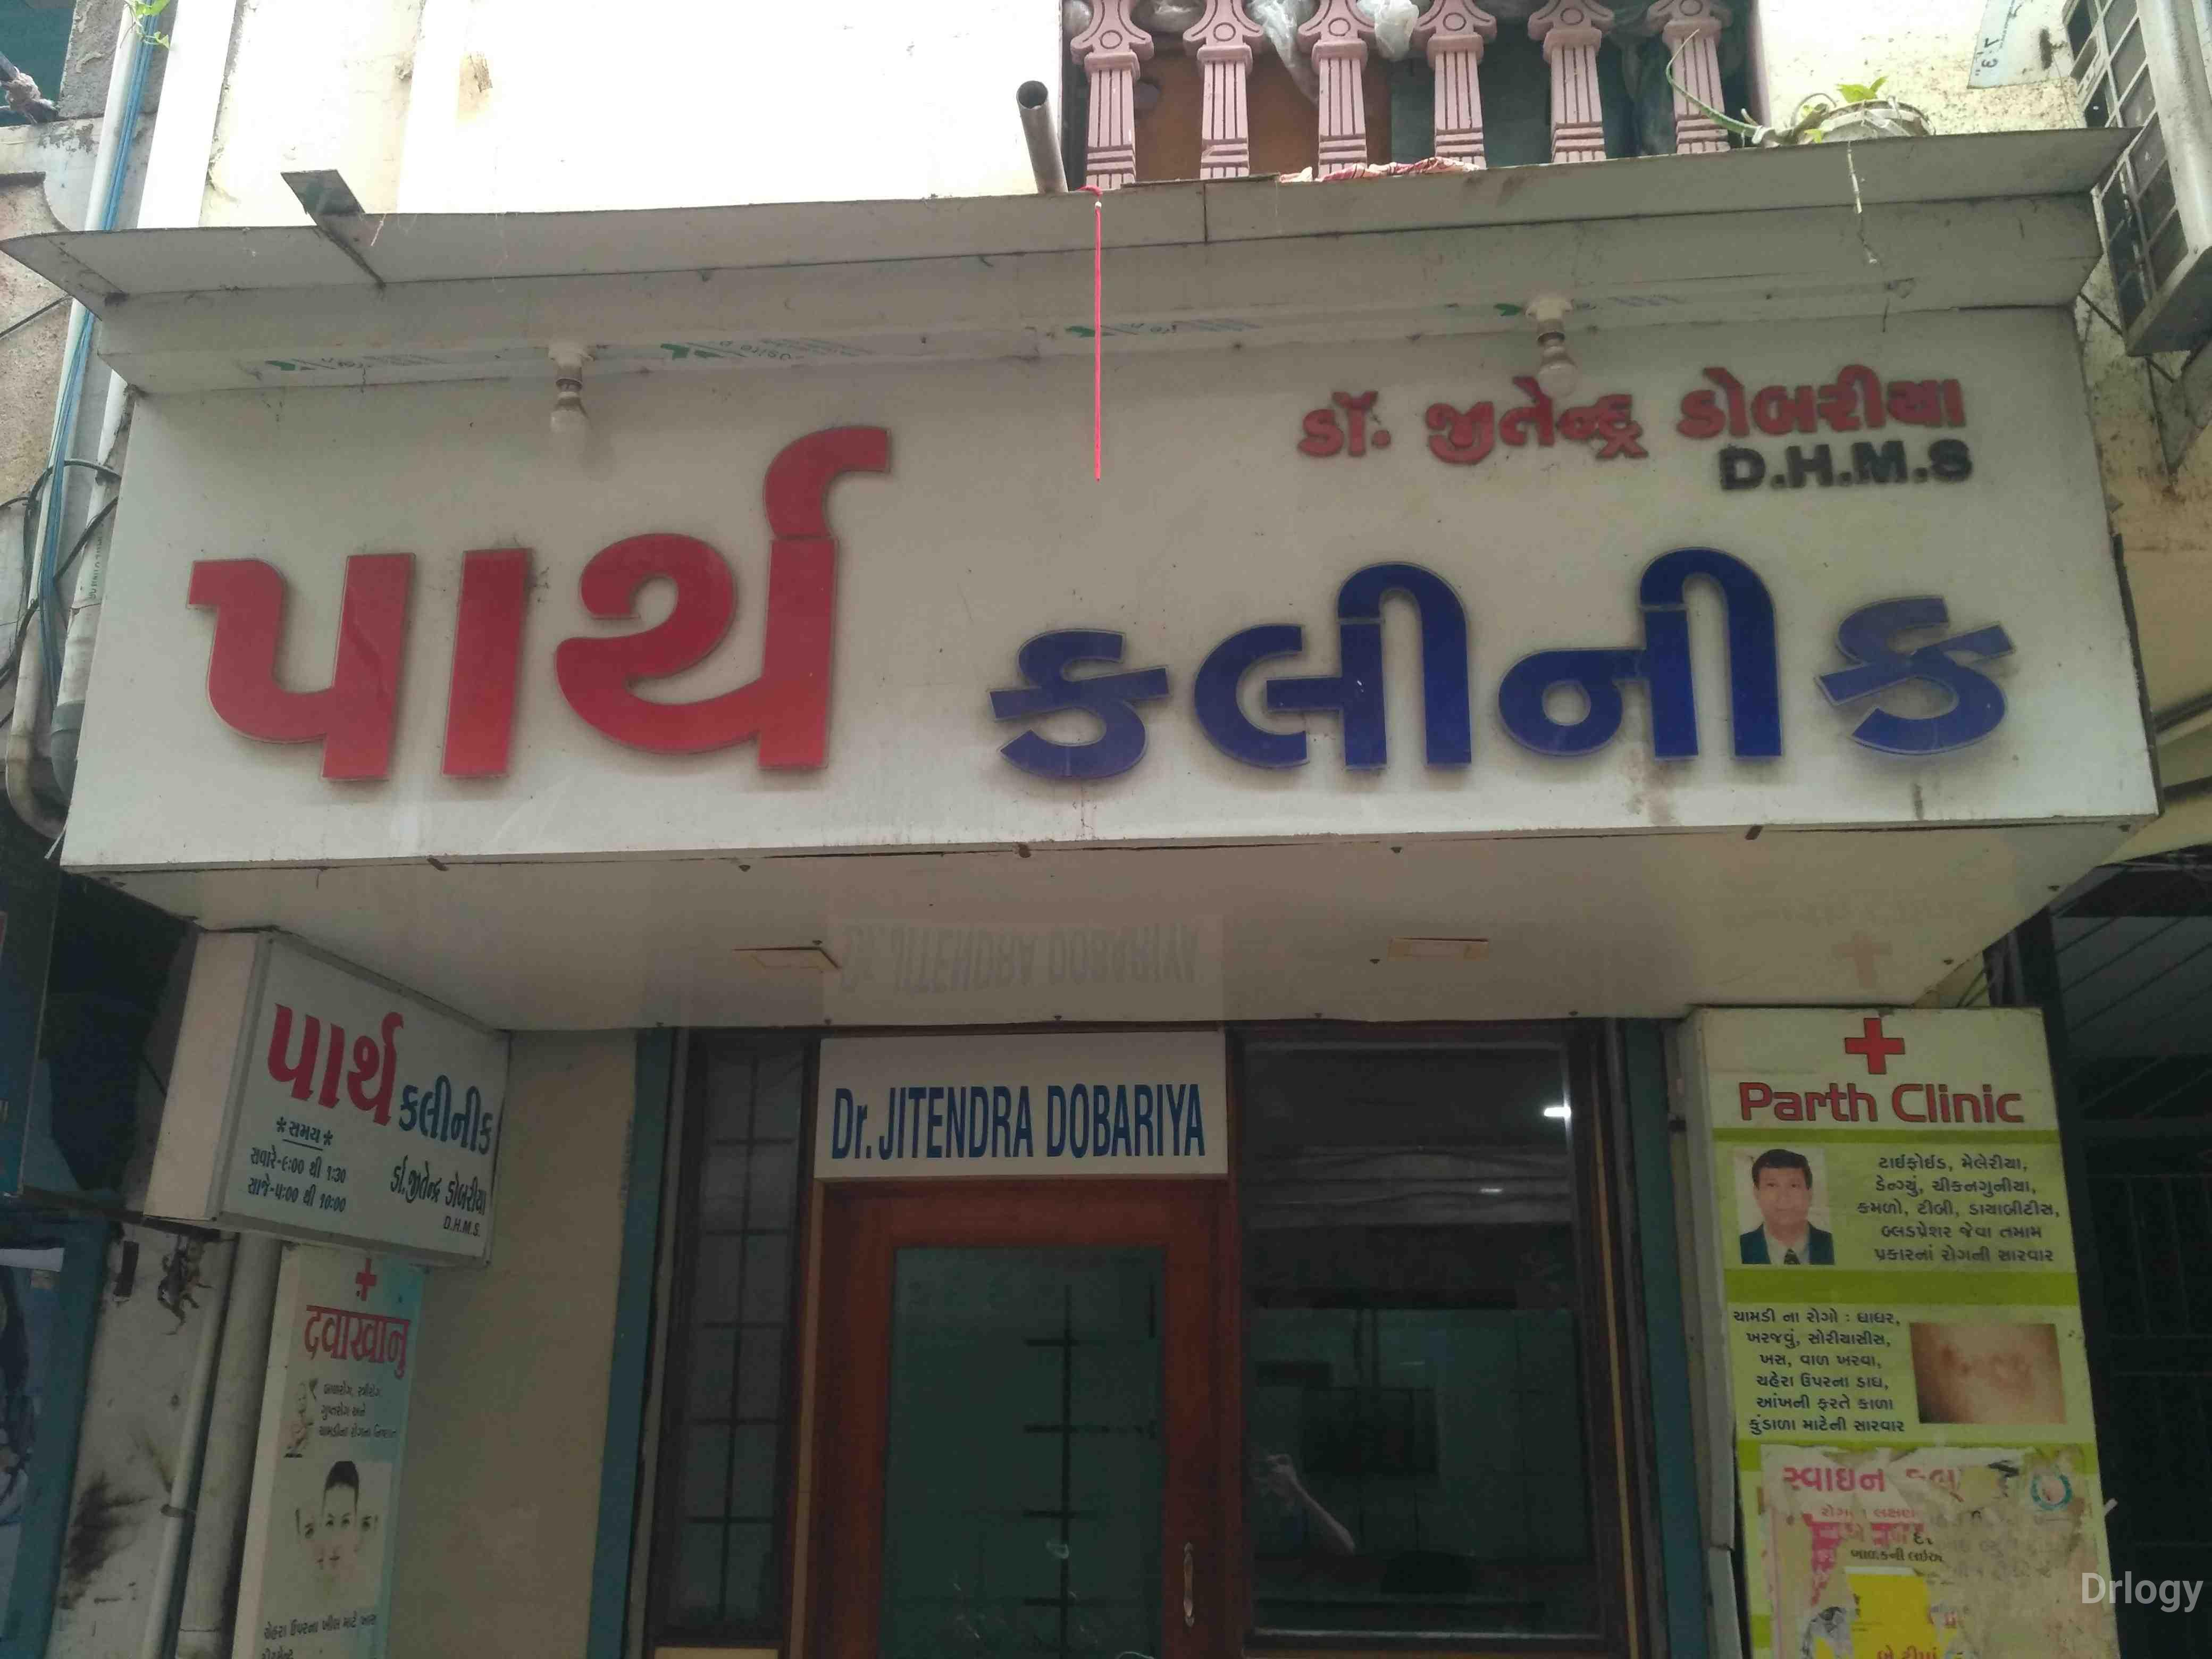 Parth clinic and vaccination center in Surat